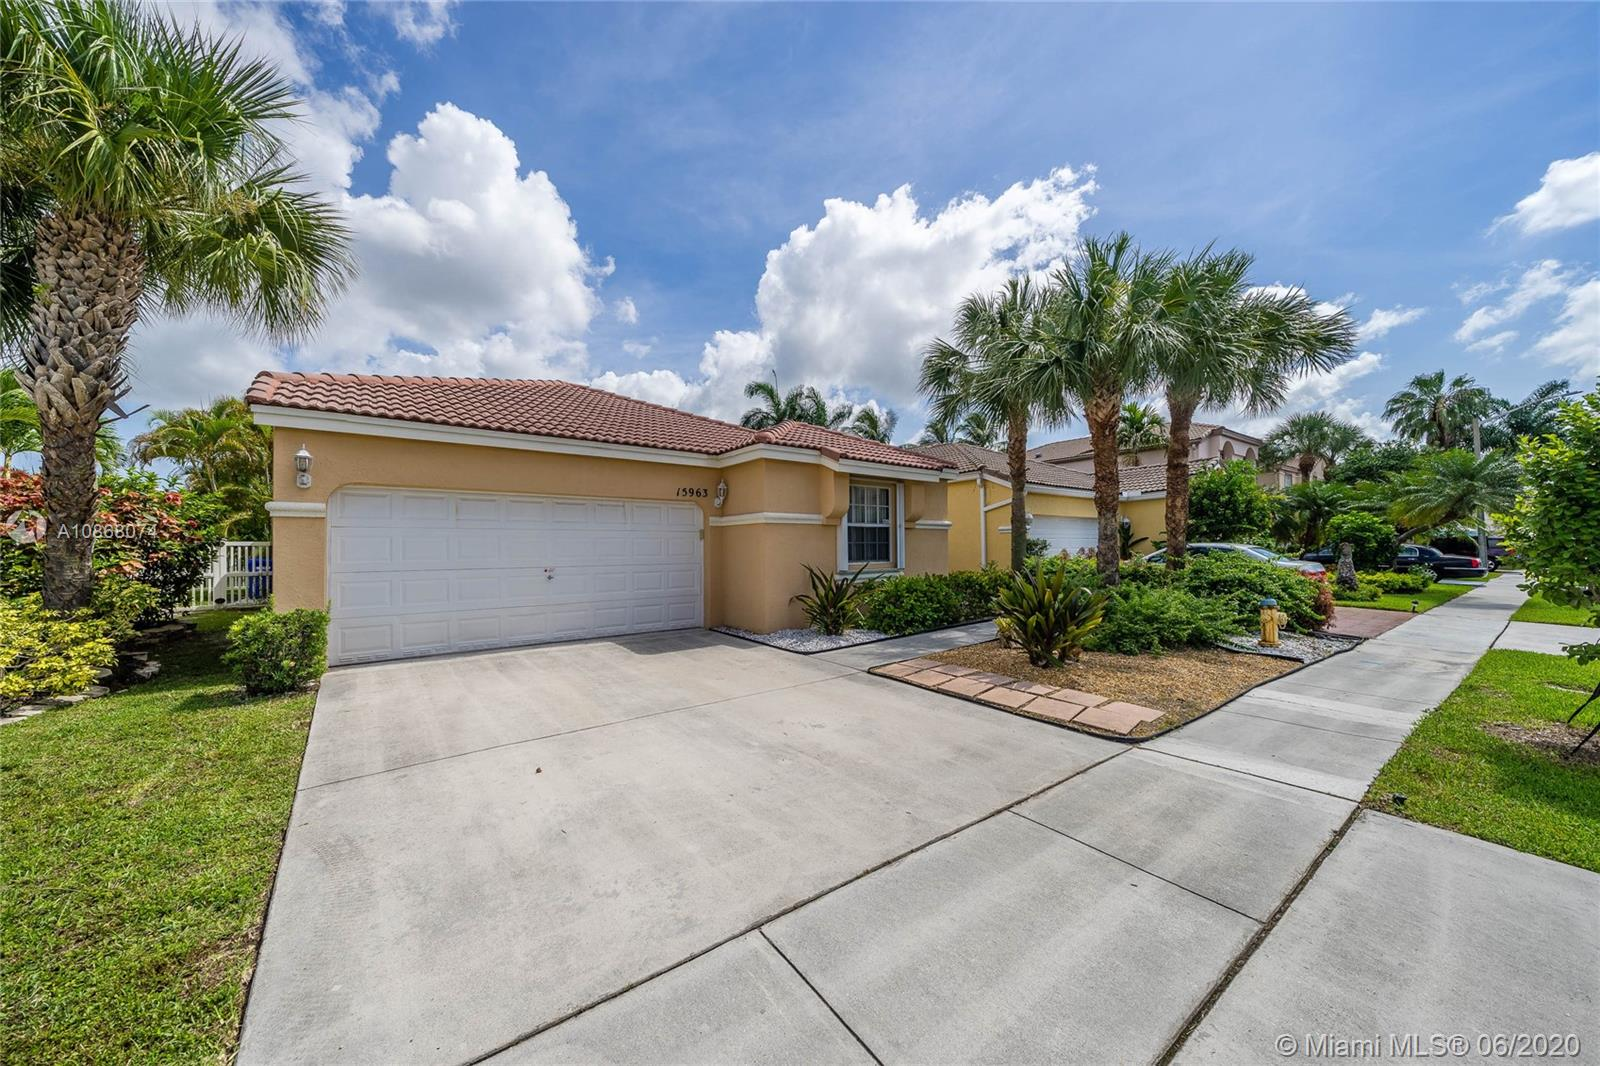 Exquisite lake front one story home in a gated community! Lushly land escaped front w/plenty of guest parking across the street. Meticulously maintained, offering a split floor plan, w/real Bamboo wood floors,crown moldings & recess lights. Open kitchen w/wood cabinets granite counters & stainless steel appliances, adjacent from the family room & breakfast area. Separate formal living & dining areas. Master suite offers his & her closet w/organizers dual sink separate shower & the view of the lake. Full size laundry room w/cabinets,Bedroom 2 & 3 offer great closet space w/built in organizers. Winner back yard offering a huge screened in patio over looking the majestic lake. walk through video: please copy & past link https://my.matterport.com/show/?m=cEPoU1YvRqb&brand=0